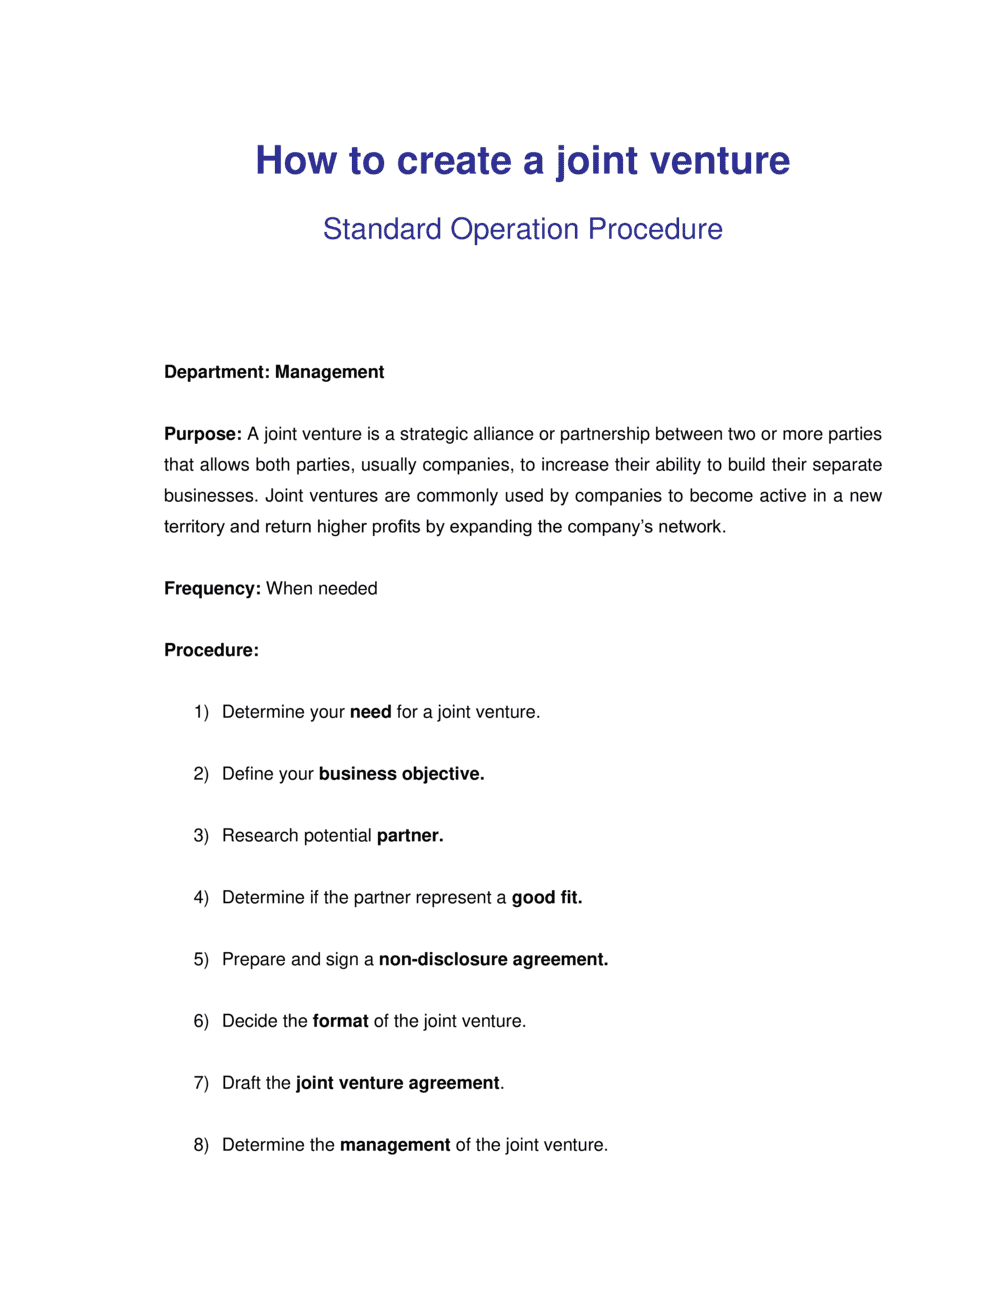 Business-in-a-Box's How to Create a Joint Venture Template